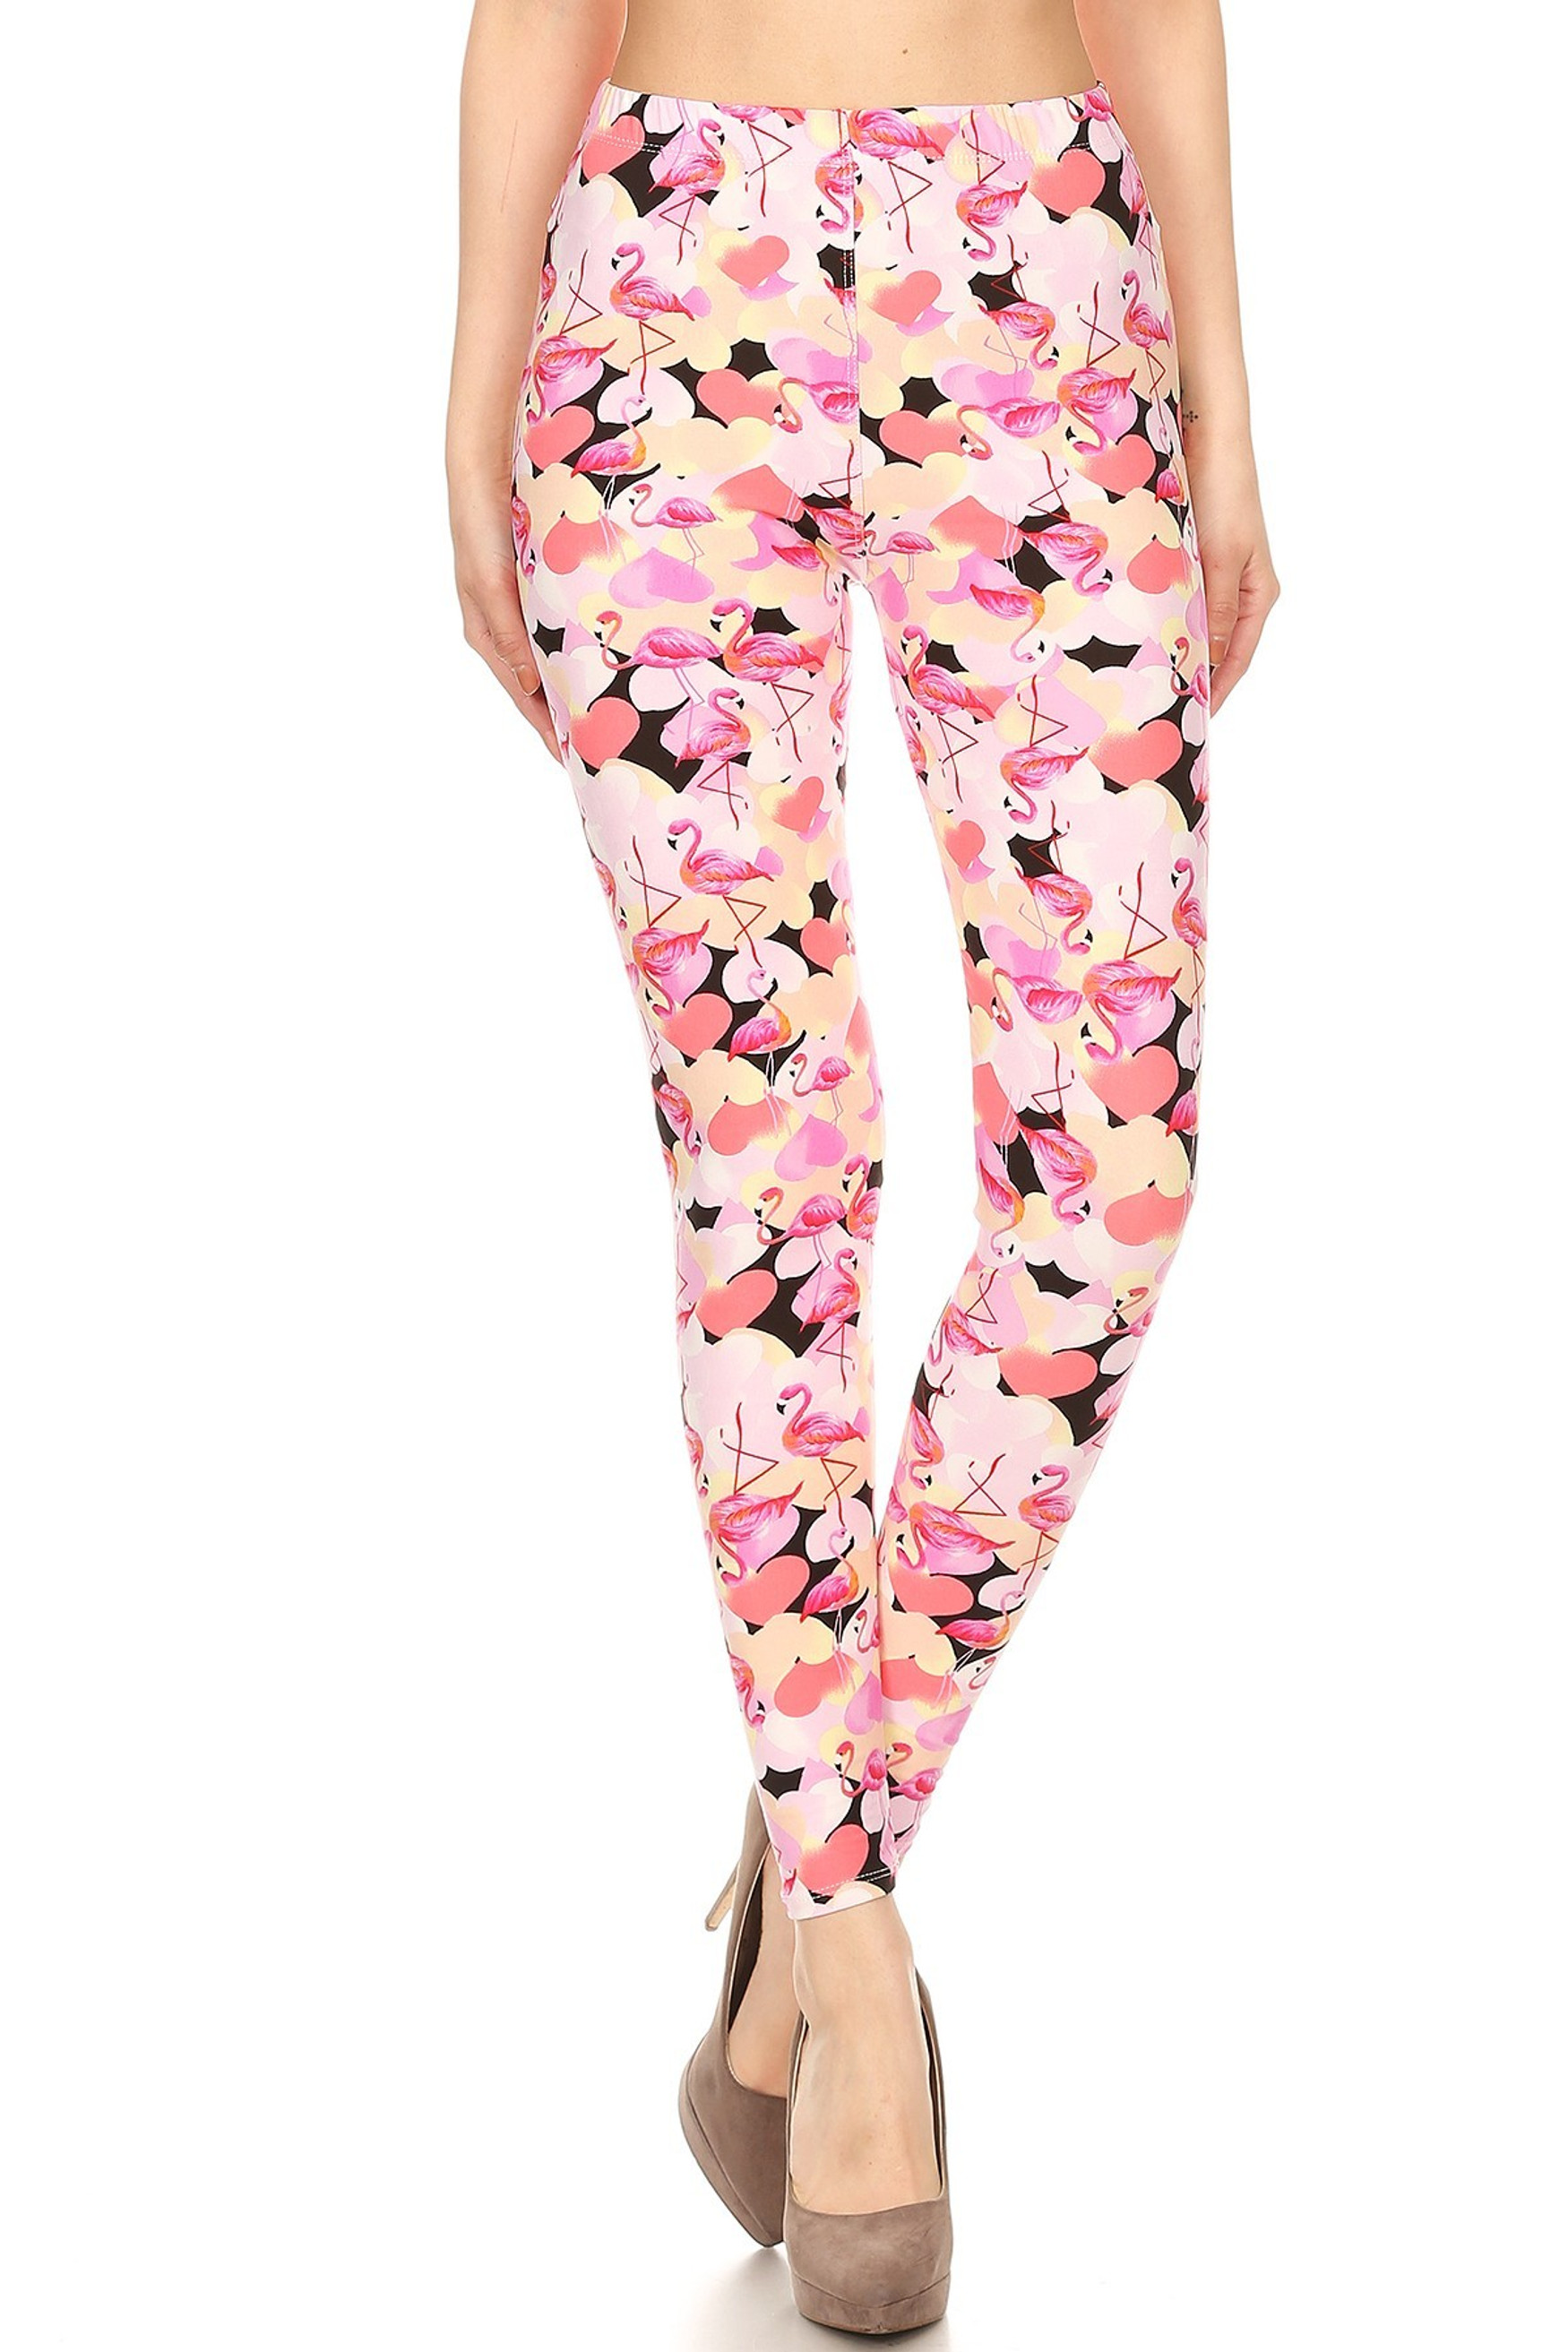 Front of Soft Brushed Gorgeous Pink Flamingos Plus Size Leggings - 3X-5X